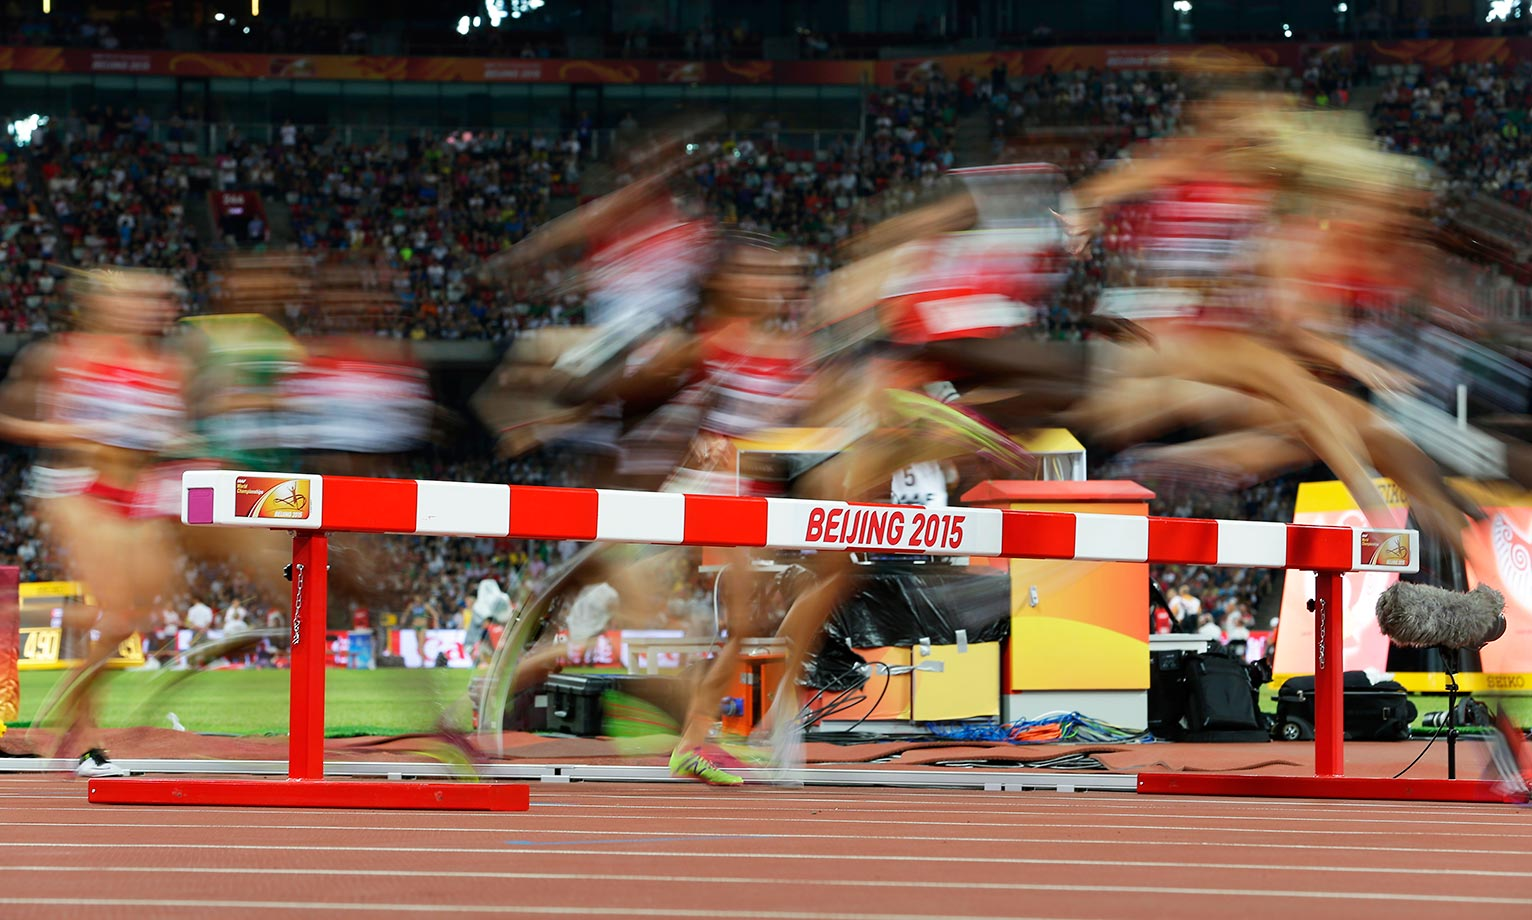 Blur action from the women's 3000m steeplechase final at the World Athletics Championships.